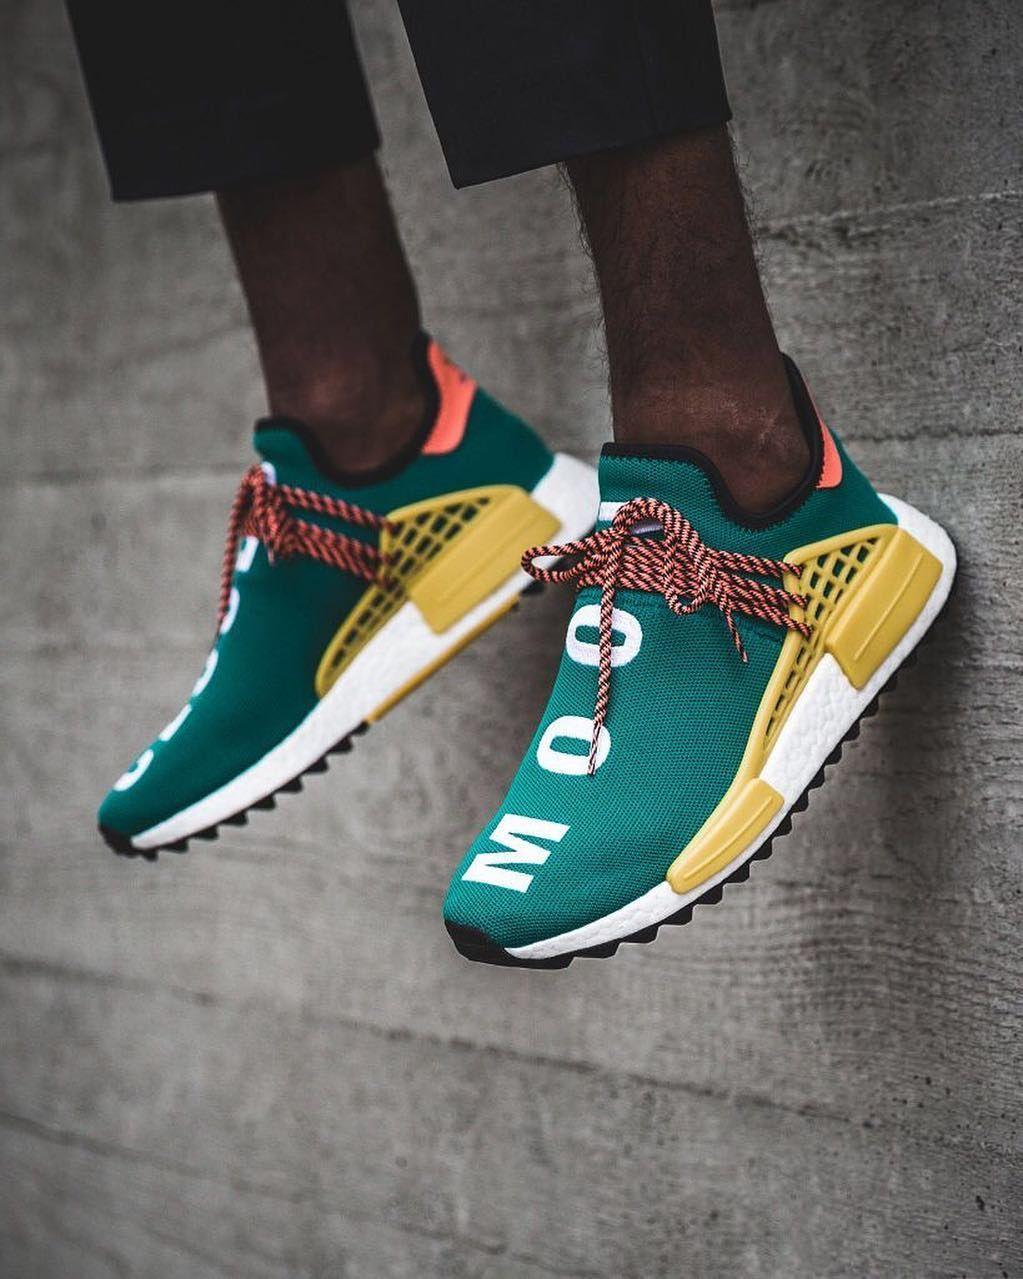 7402912471fe53 Pharrell Williams x adidas NMD Human Race Sun Glow